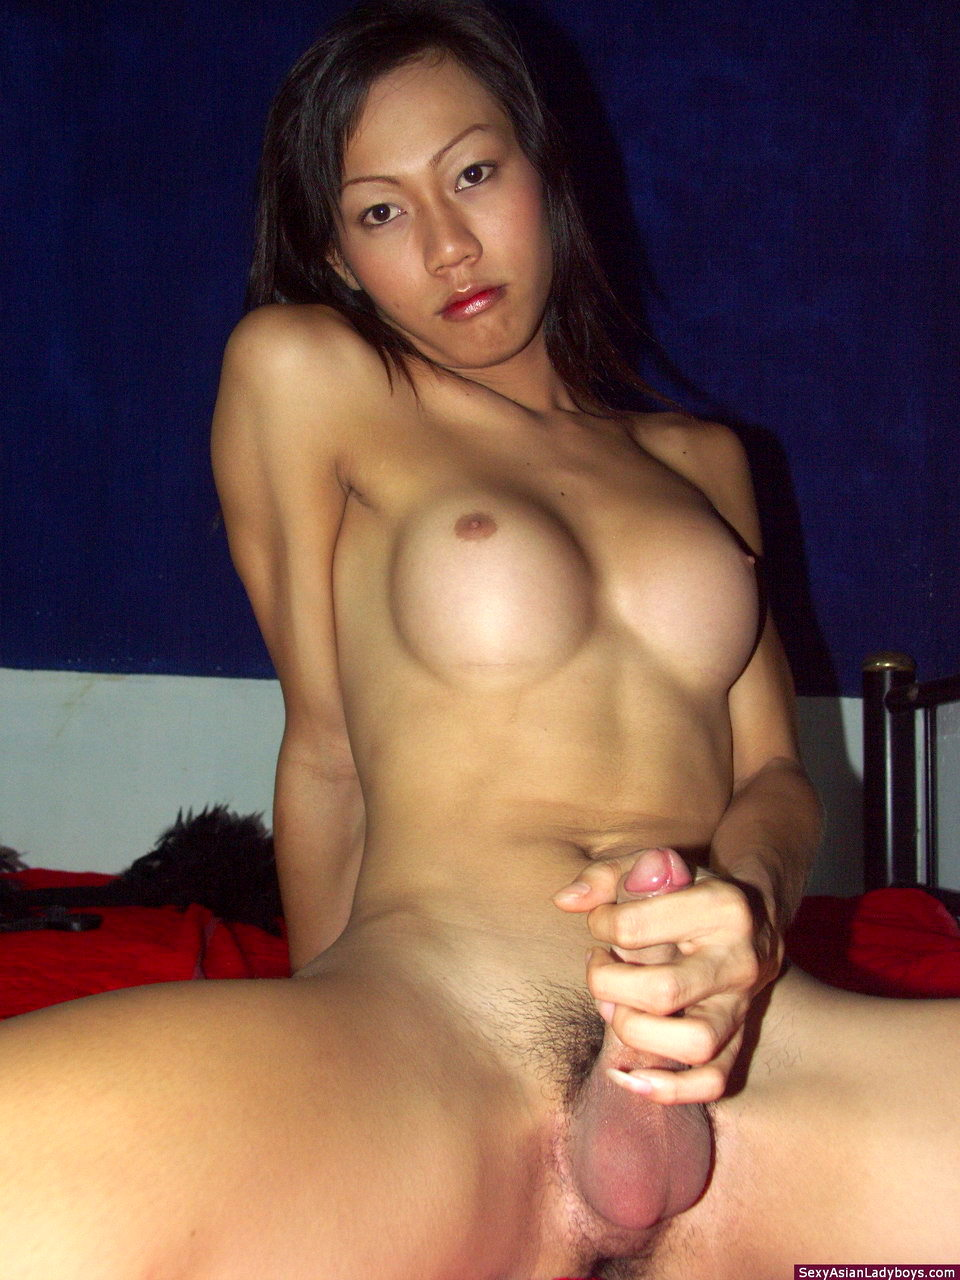 Busty TGirl Nancy Plays With Her Hardon Until Shooting A Massive Load Of Jizz